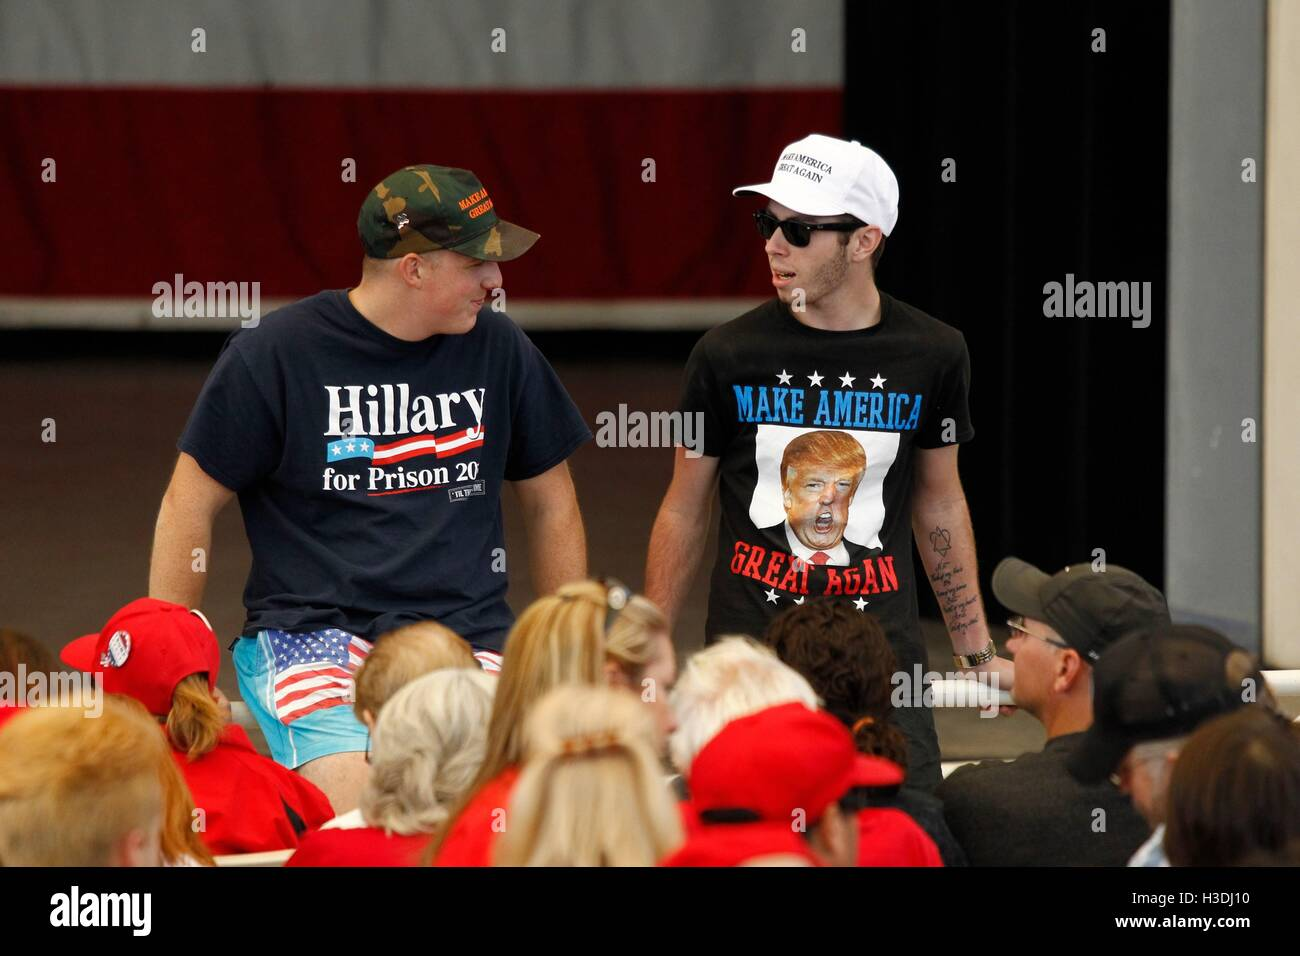 Henderson, NV, USA. 5th Oct, 2016. Donald Trump supporters wearing a 'Hillary for Prison' and 'Make - Stock Image